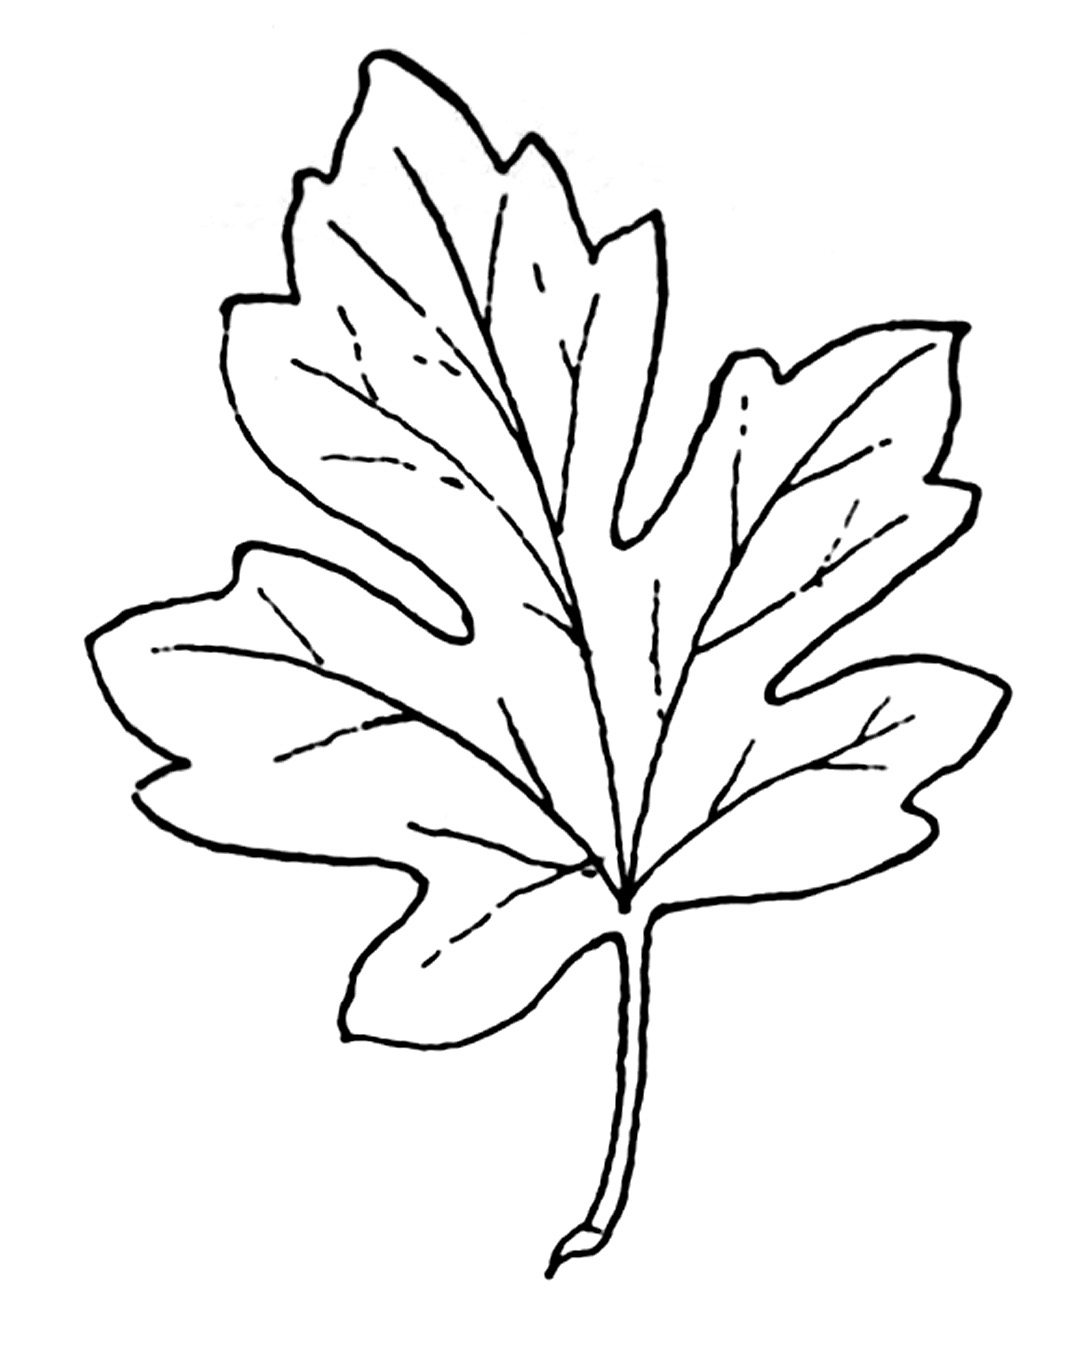 ... black and white clipart - clipart kid Fall Leaf Border Black And White: wesharepics.info/imagefgkl-fall-leaf-border-black-and-white.asp